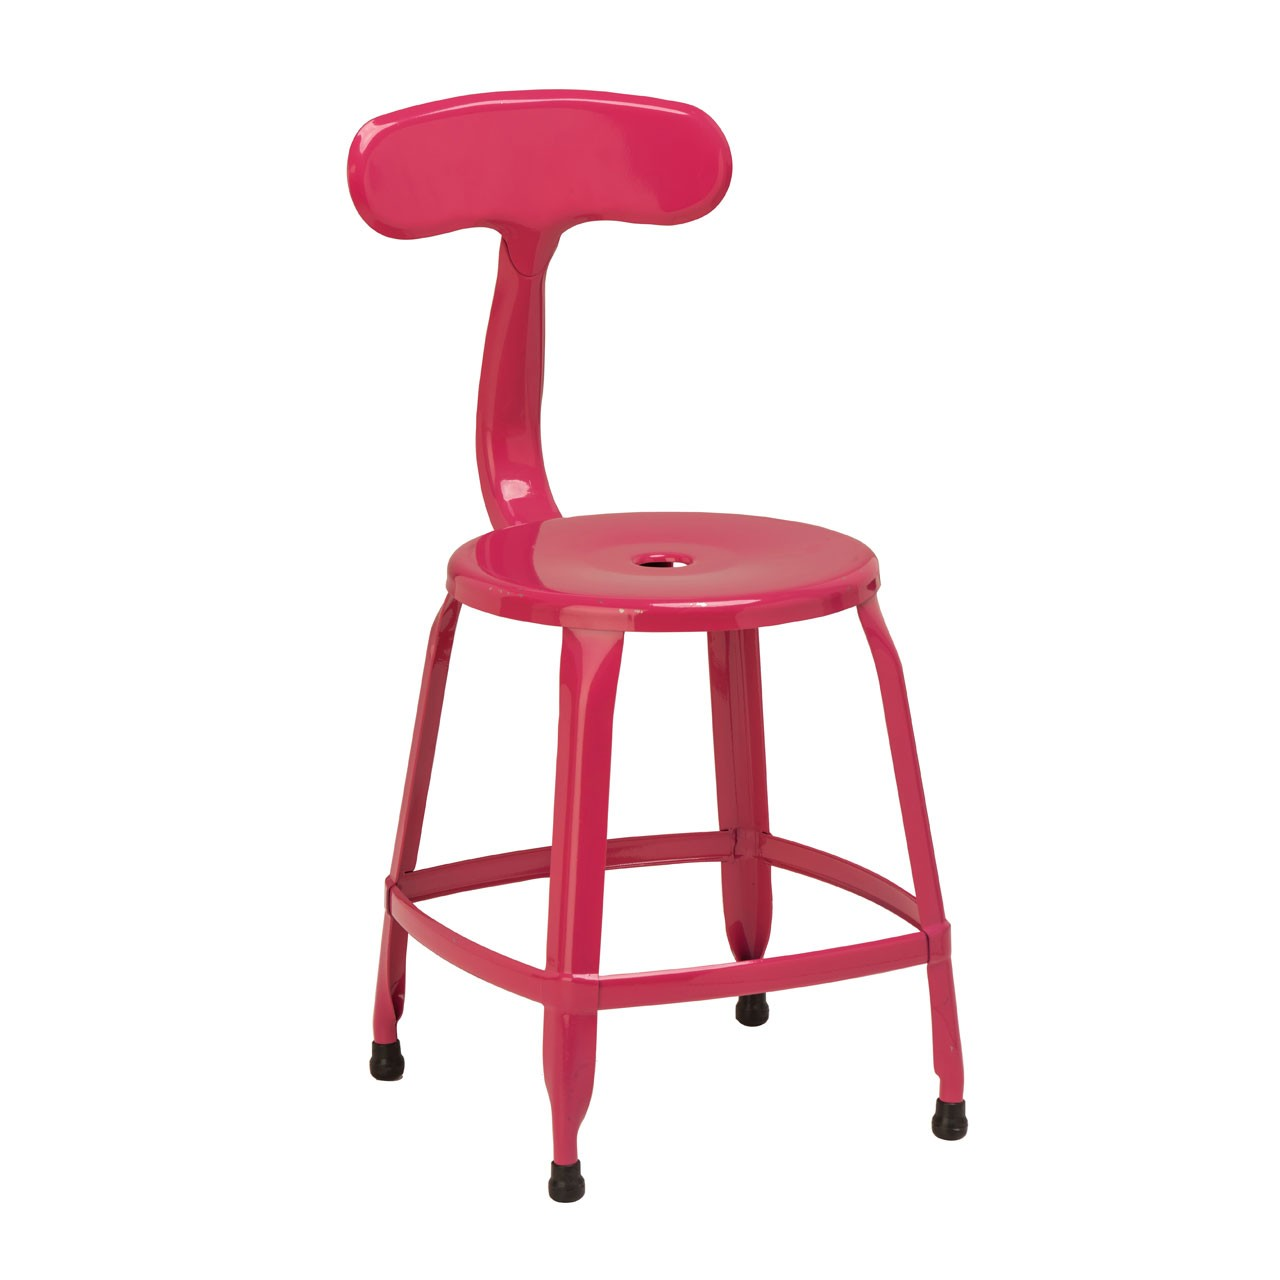 4 x Disc Chair Hot Pink Powder Coated Metal